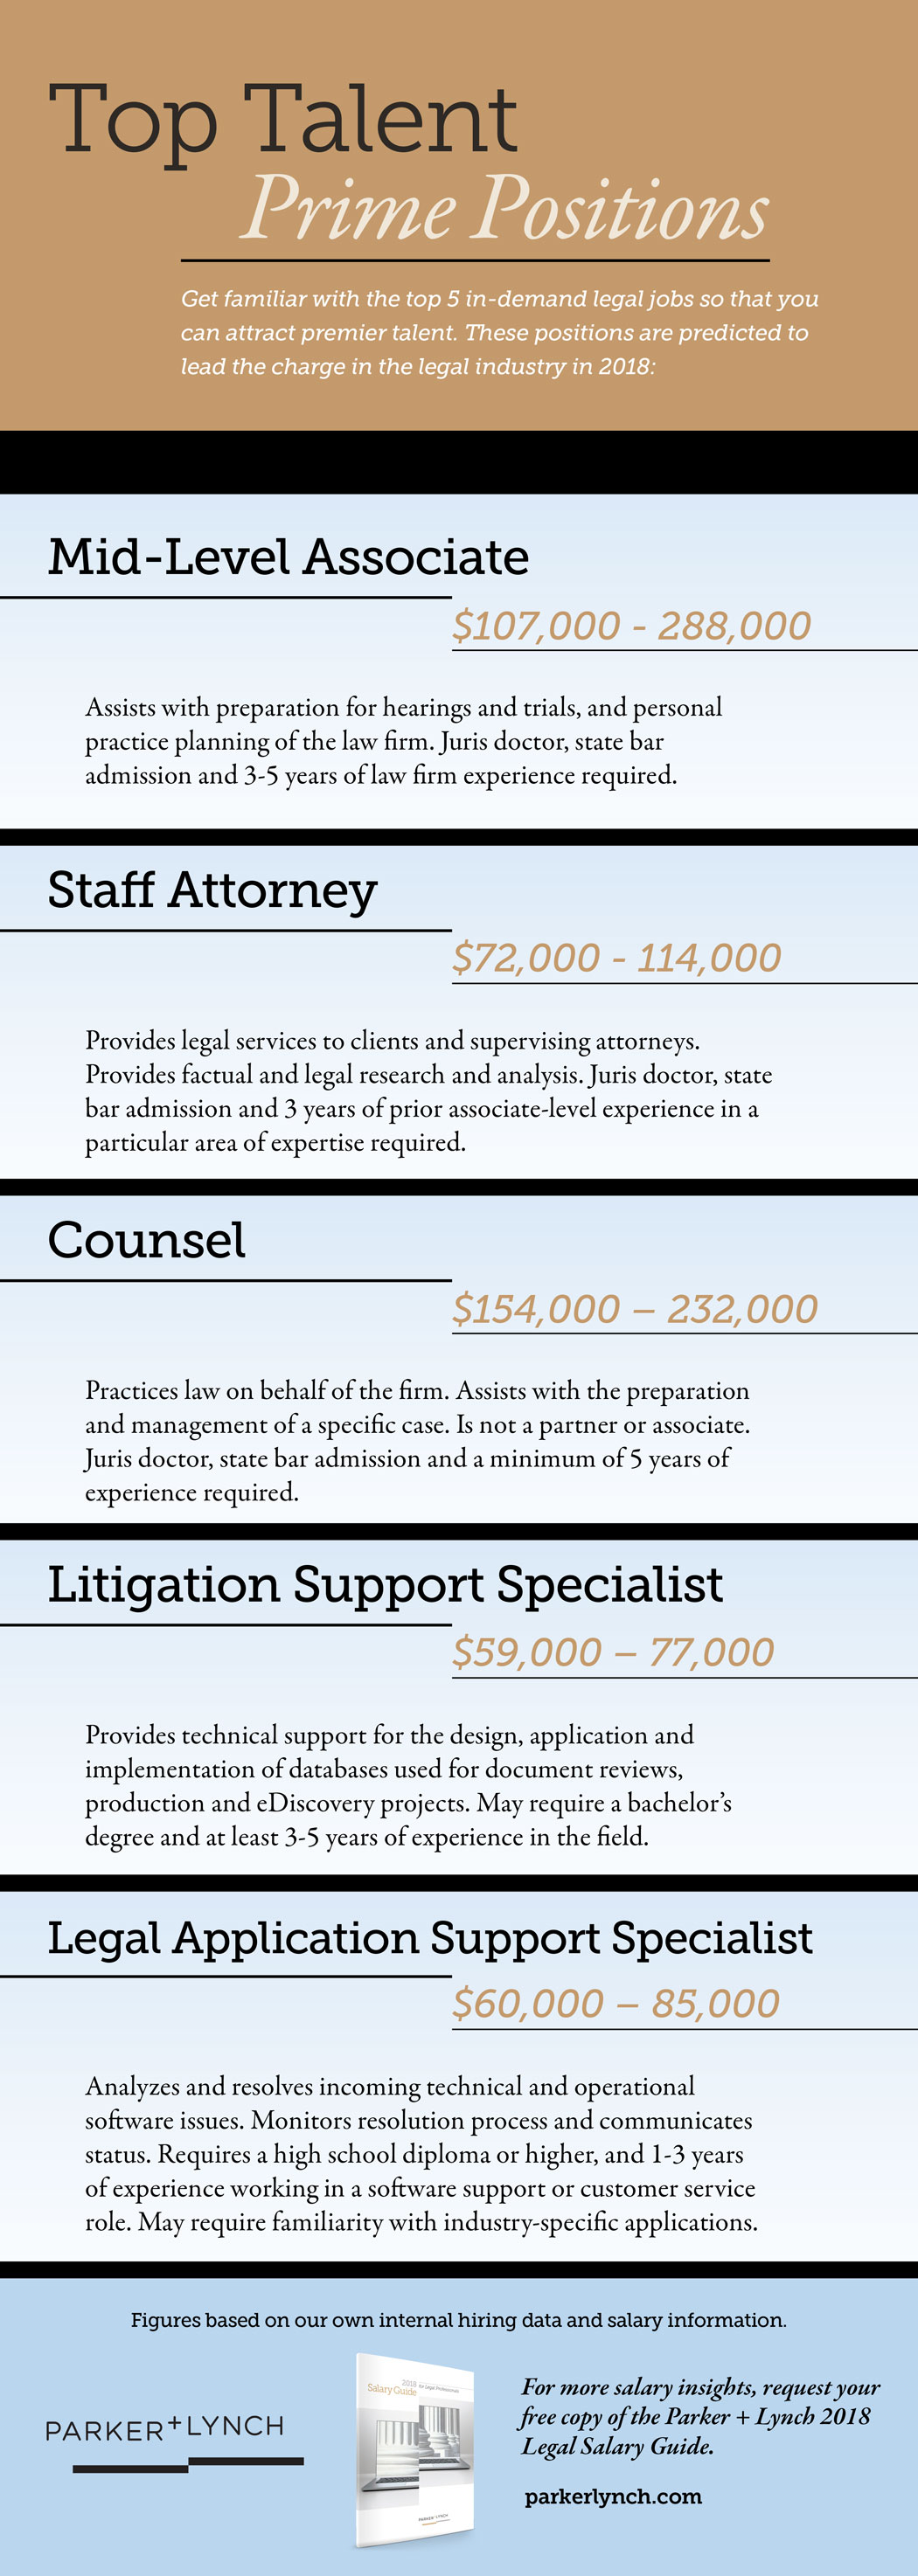 : Infographic of Top Law Jobs with Salaries for 2018 from Parker+Lynch